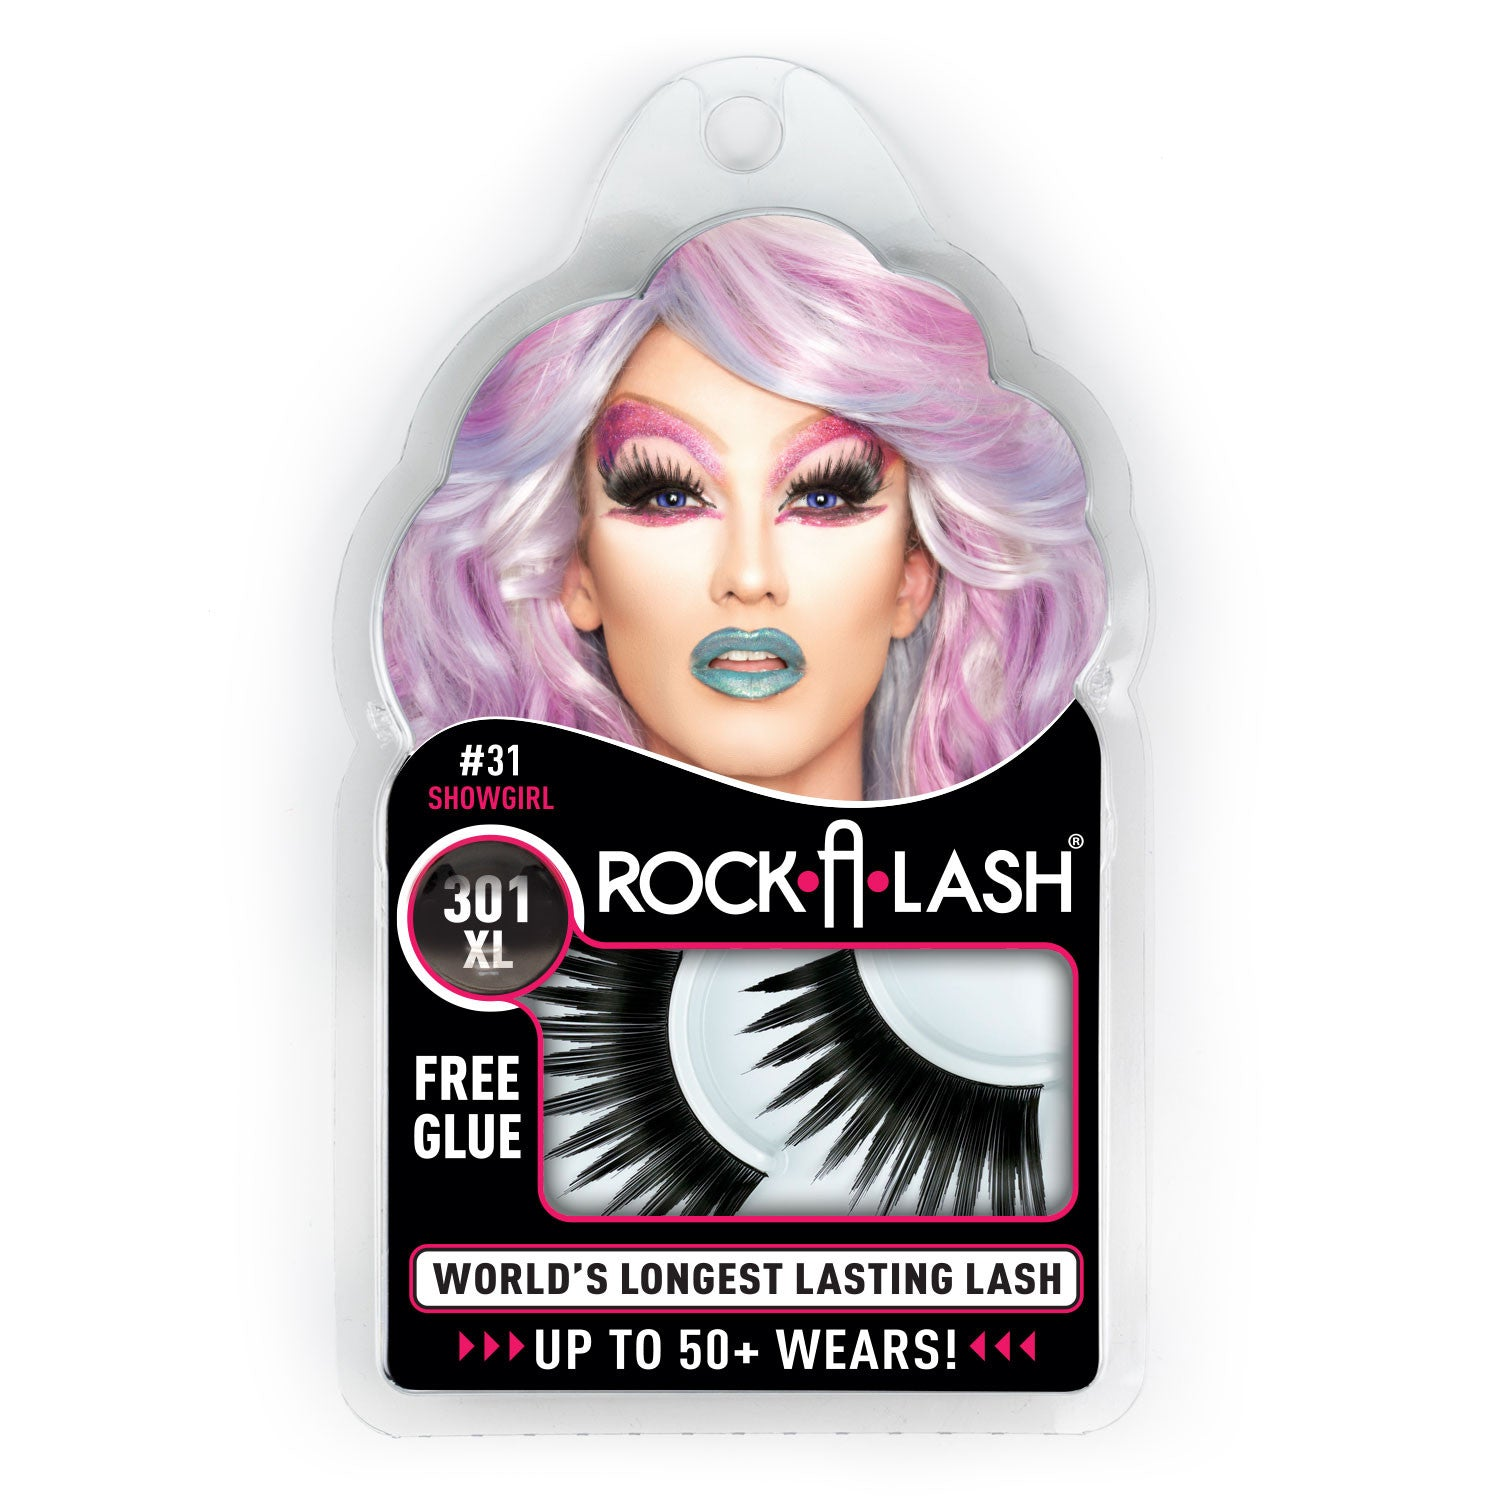 Rock-A-Lash ® <br> #31 - 301XL™ - 1 Pair